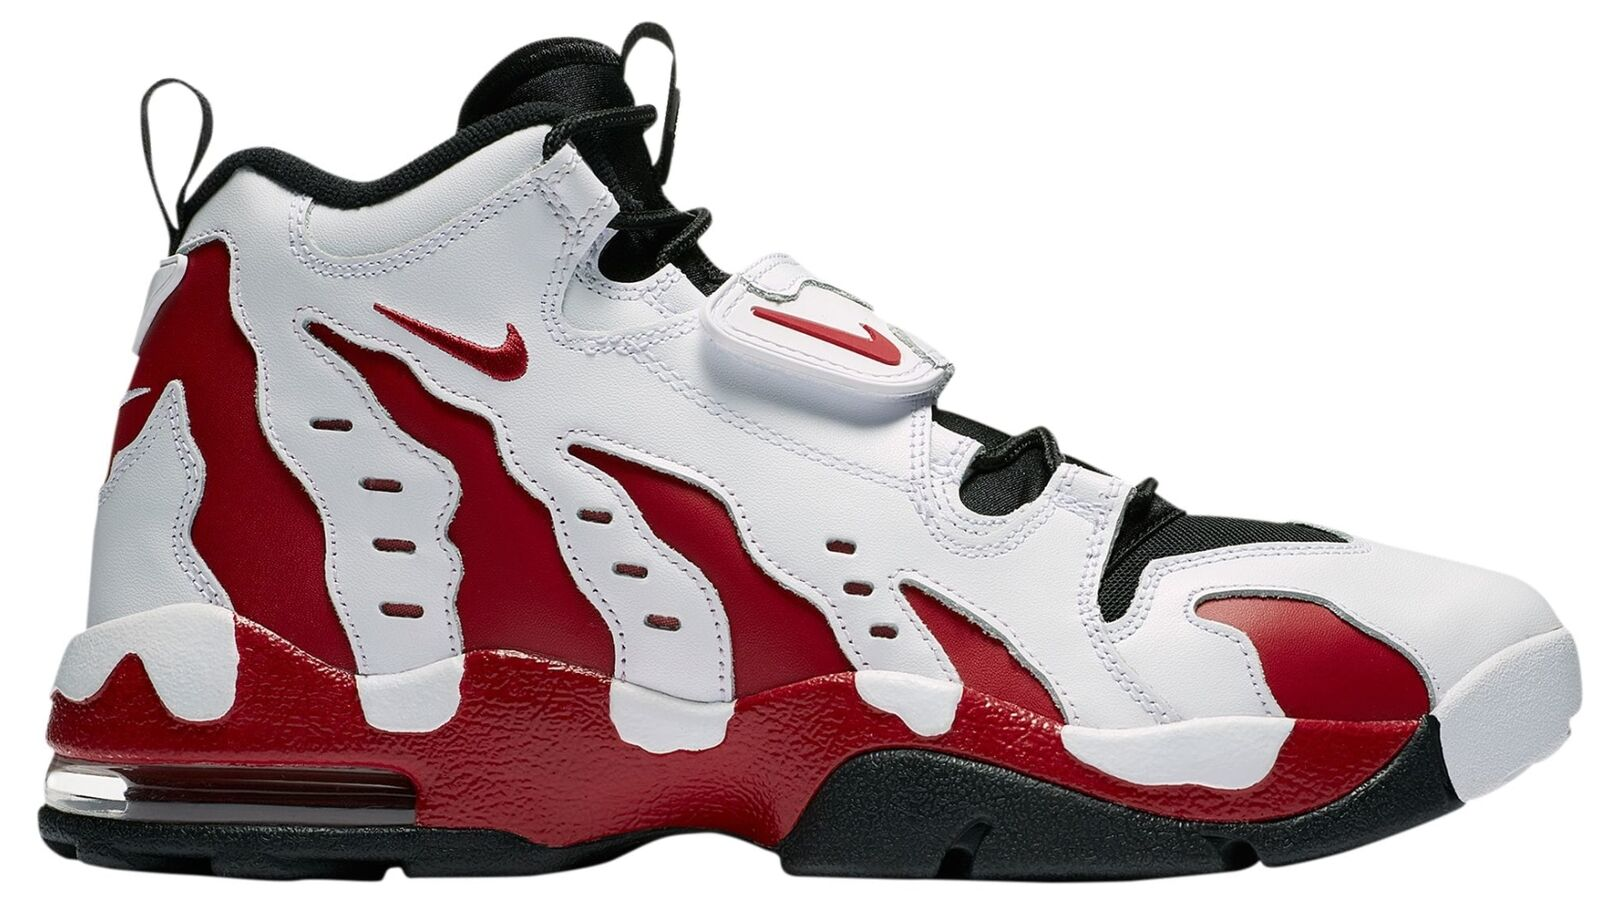 Nike Air DT Max '96 Falcons Mens 316408-161 White Red Black Deion Shoes Size 9